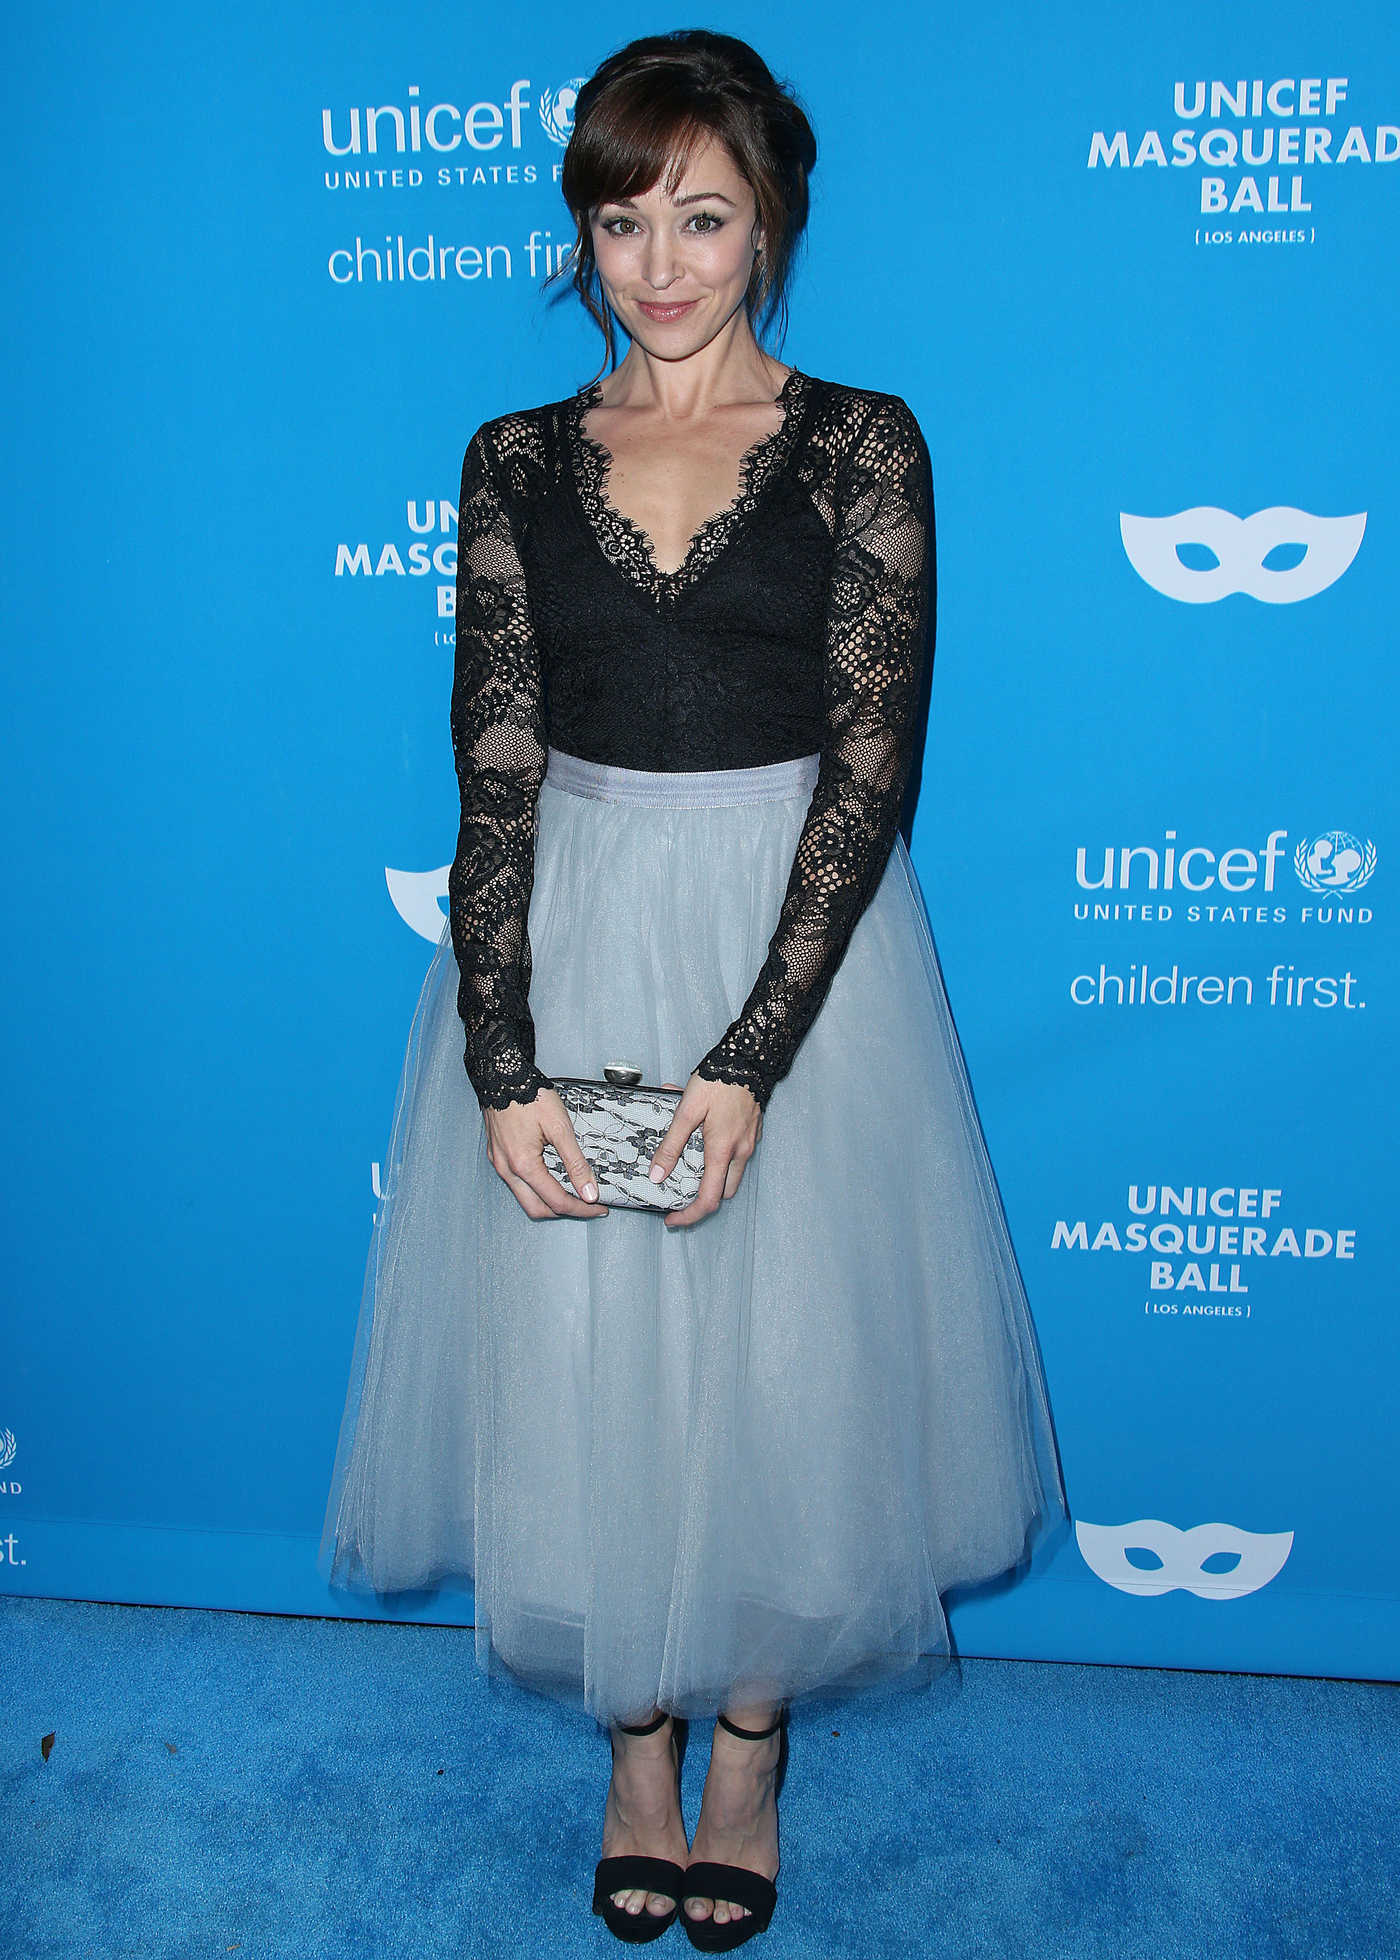 Autumn Reeser at the 2016 UNICEF Masquerade Ball in Los Angeles 10/27/2016